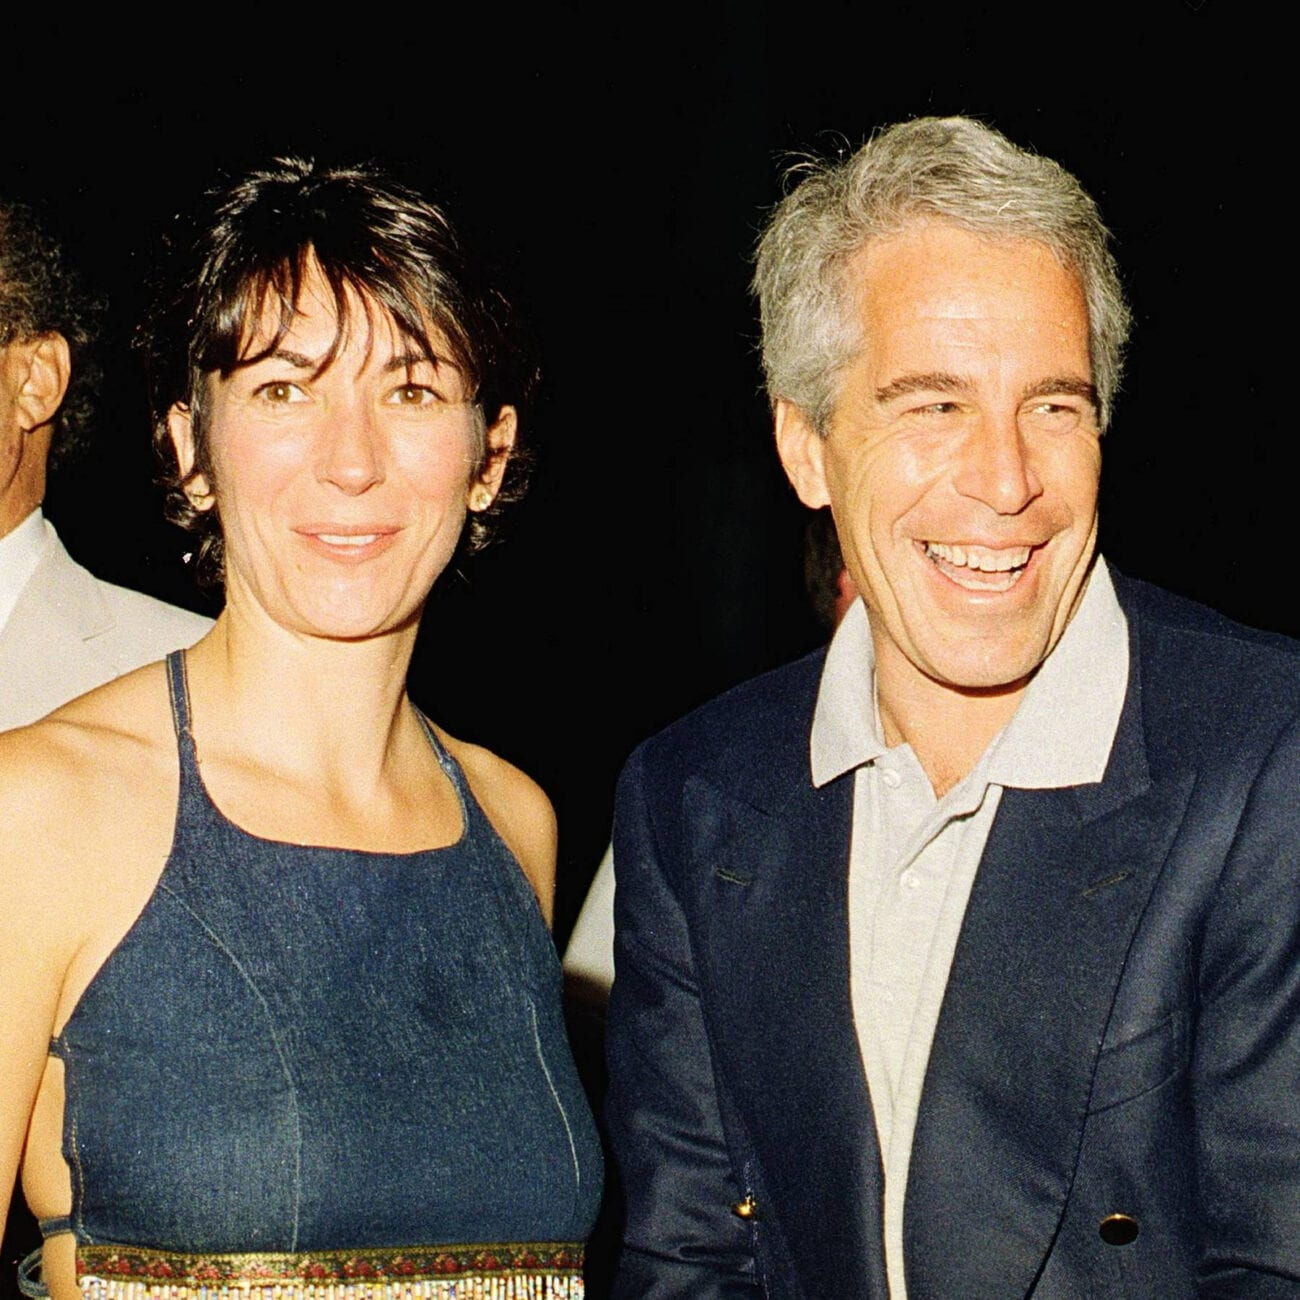 What's up with Ghislaine Maxwell being sighted with Jeffrey Epstein, six years after they said they had contact? Delve into the details here.